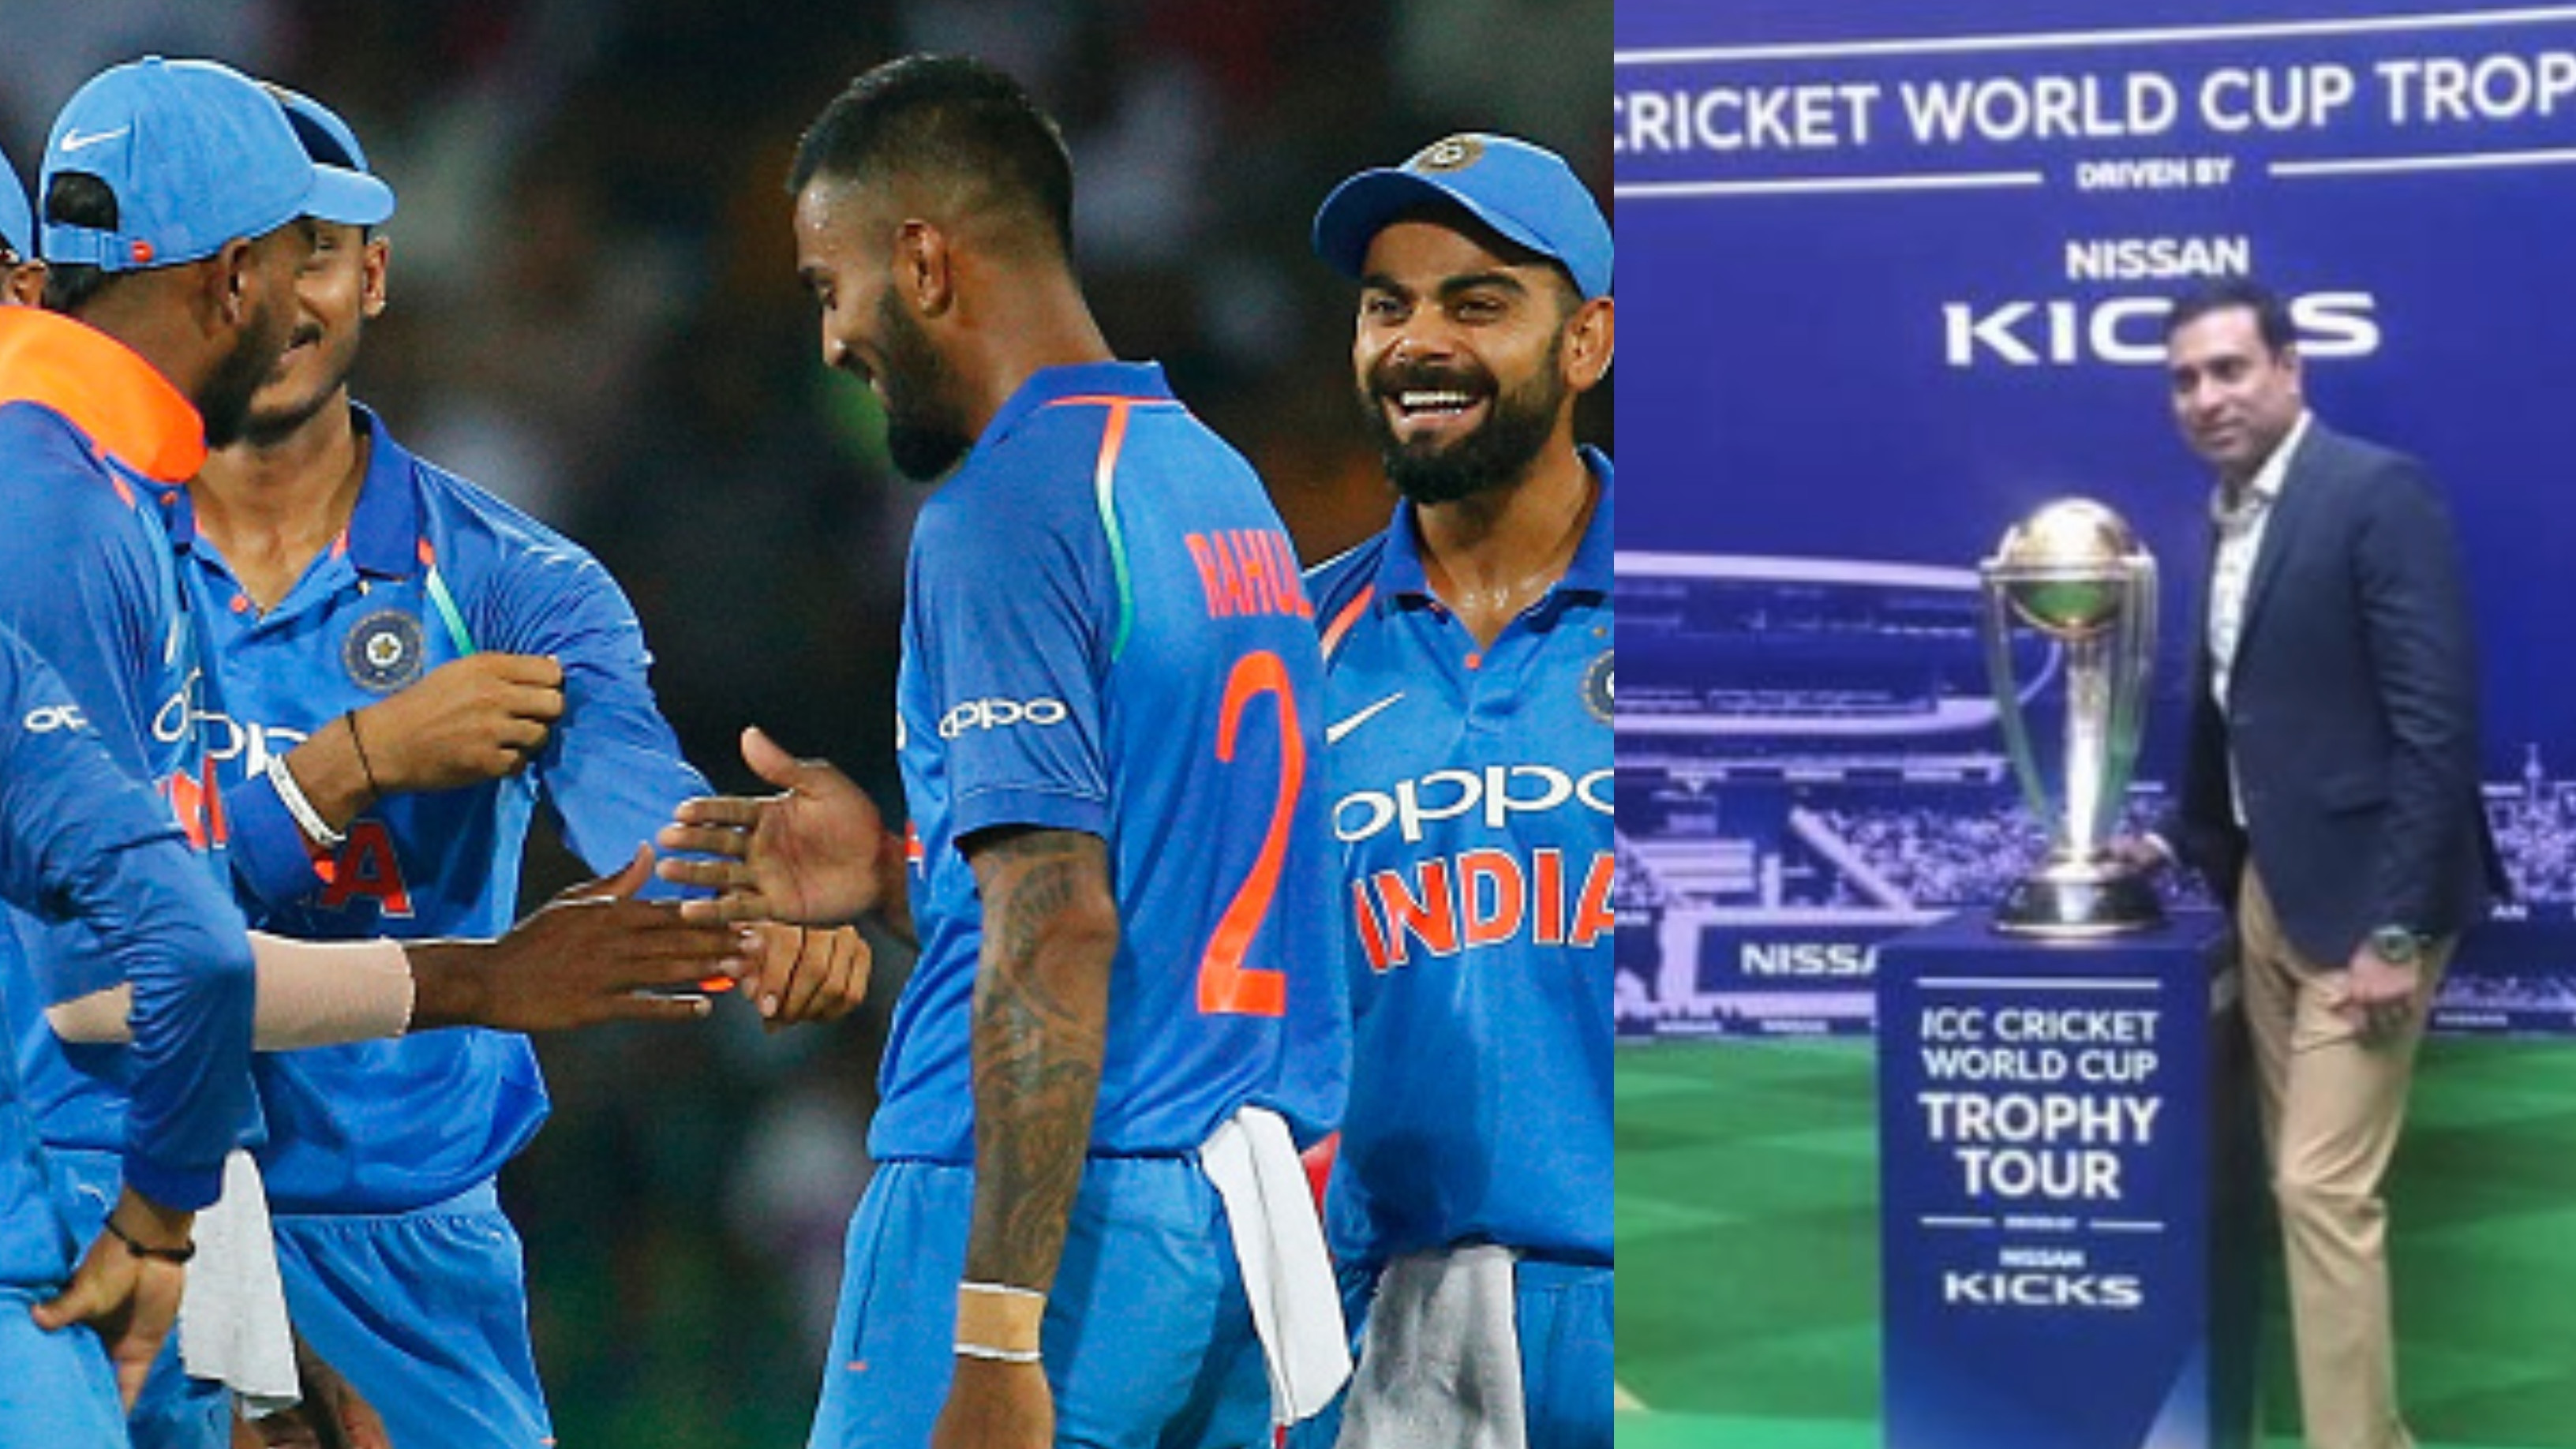 CWC 2019: VVS Laxman feels India have almost found their 2019 World Cup winning combination